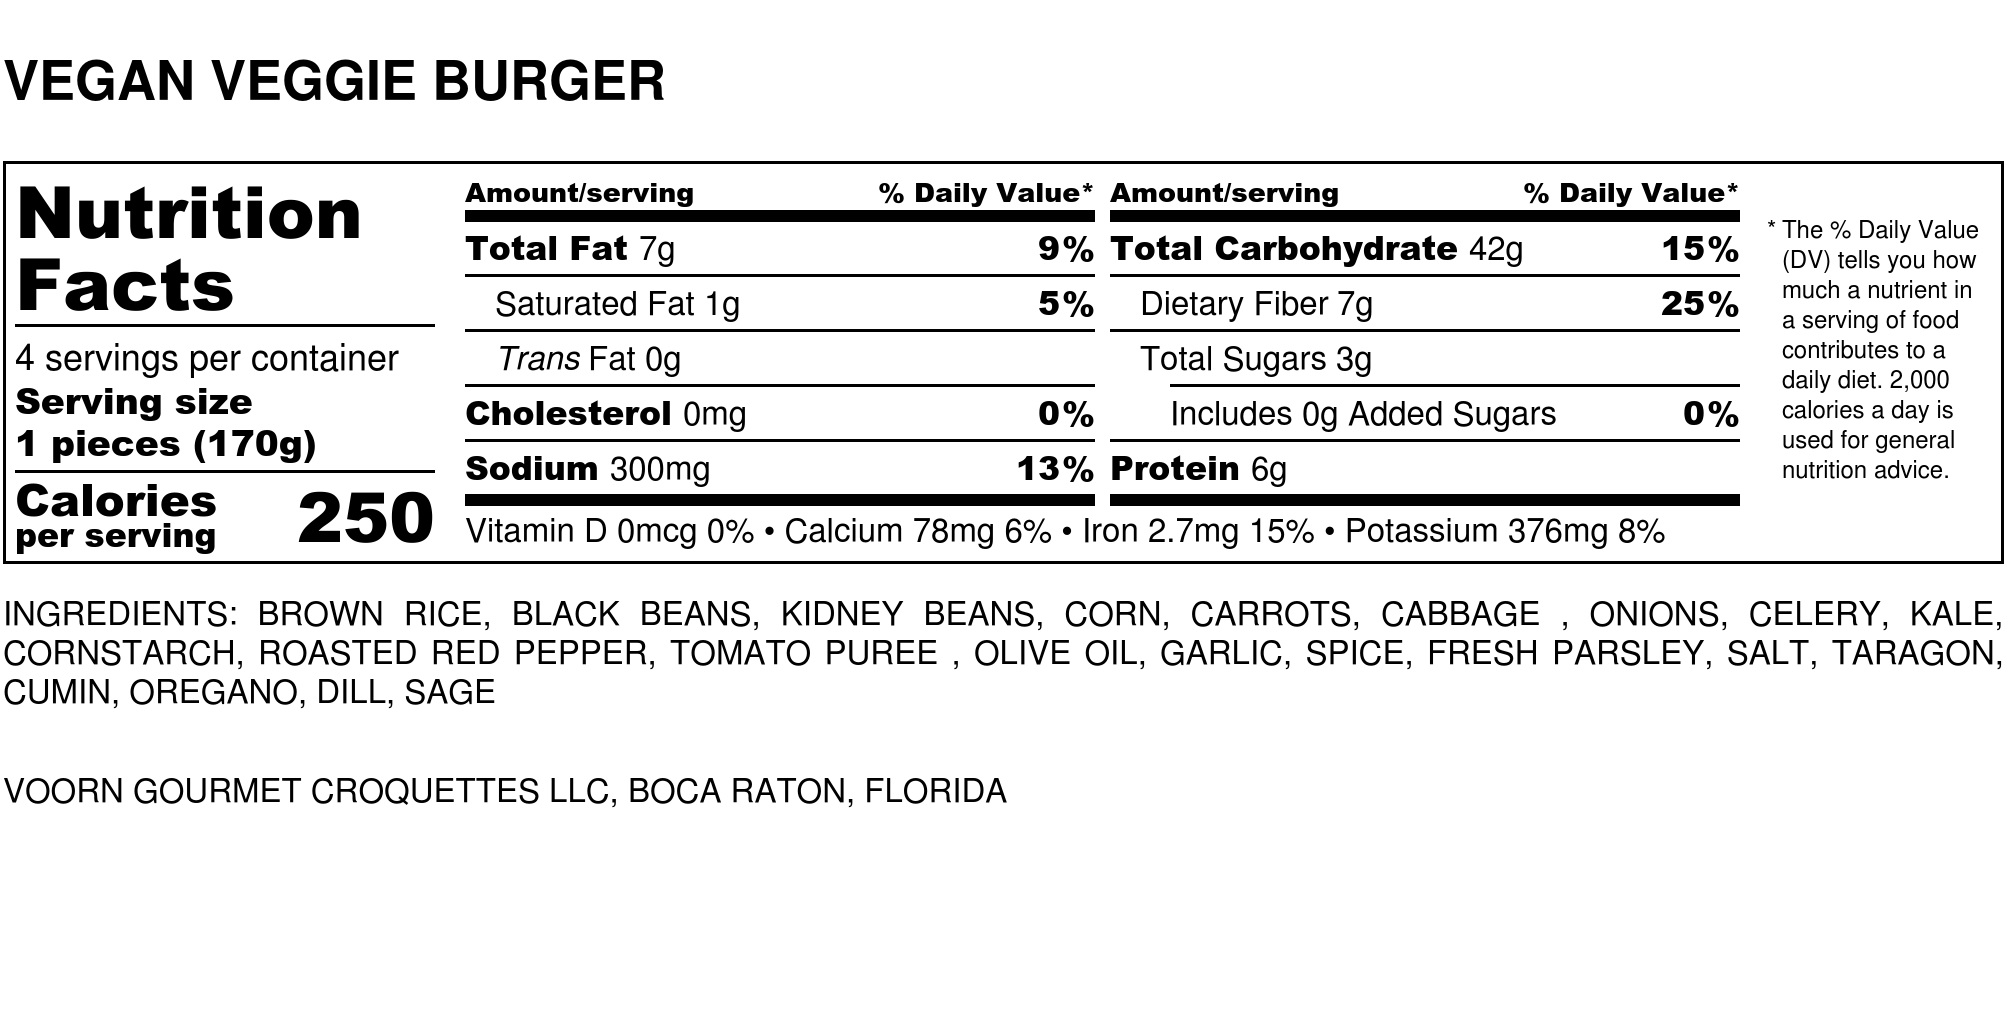 Vegan Veggie Burger Nutrition Label